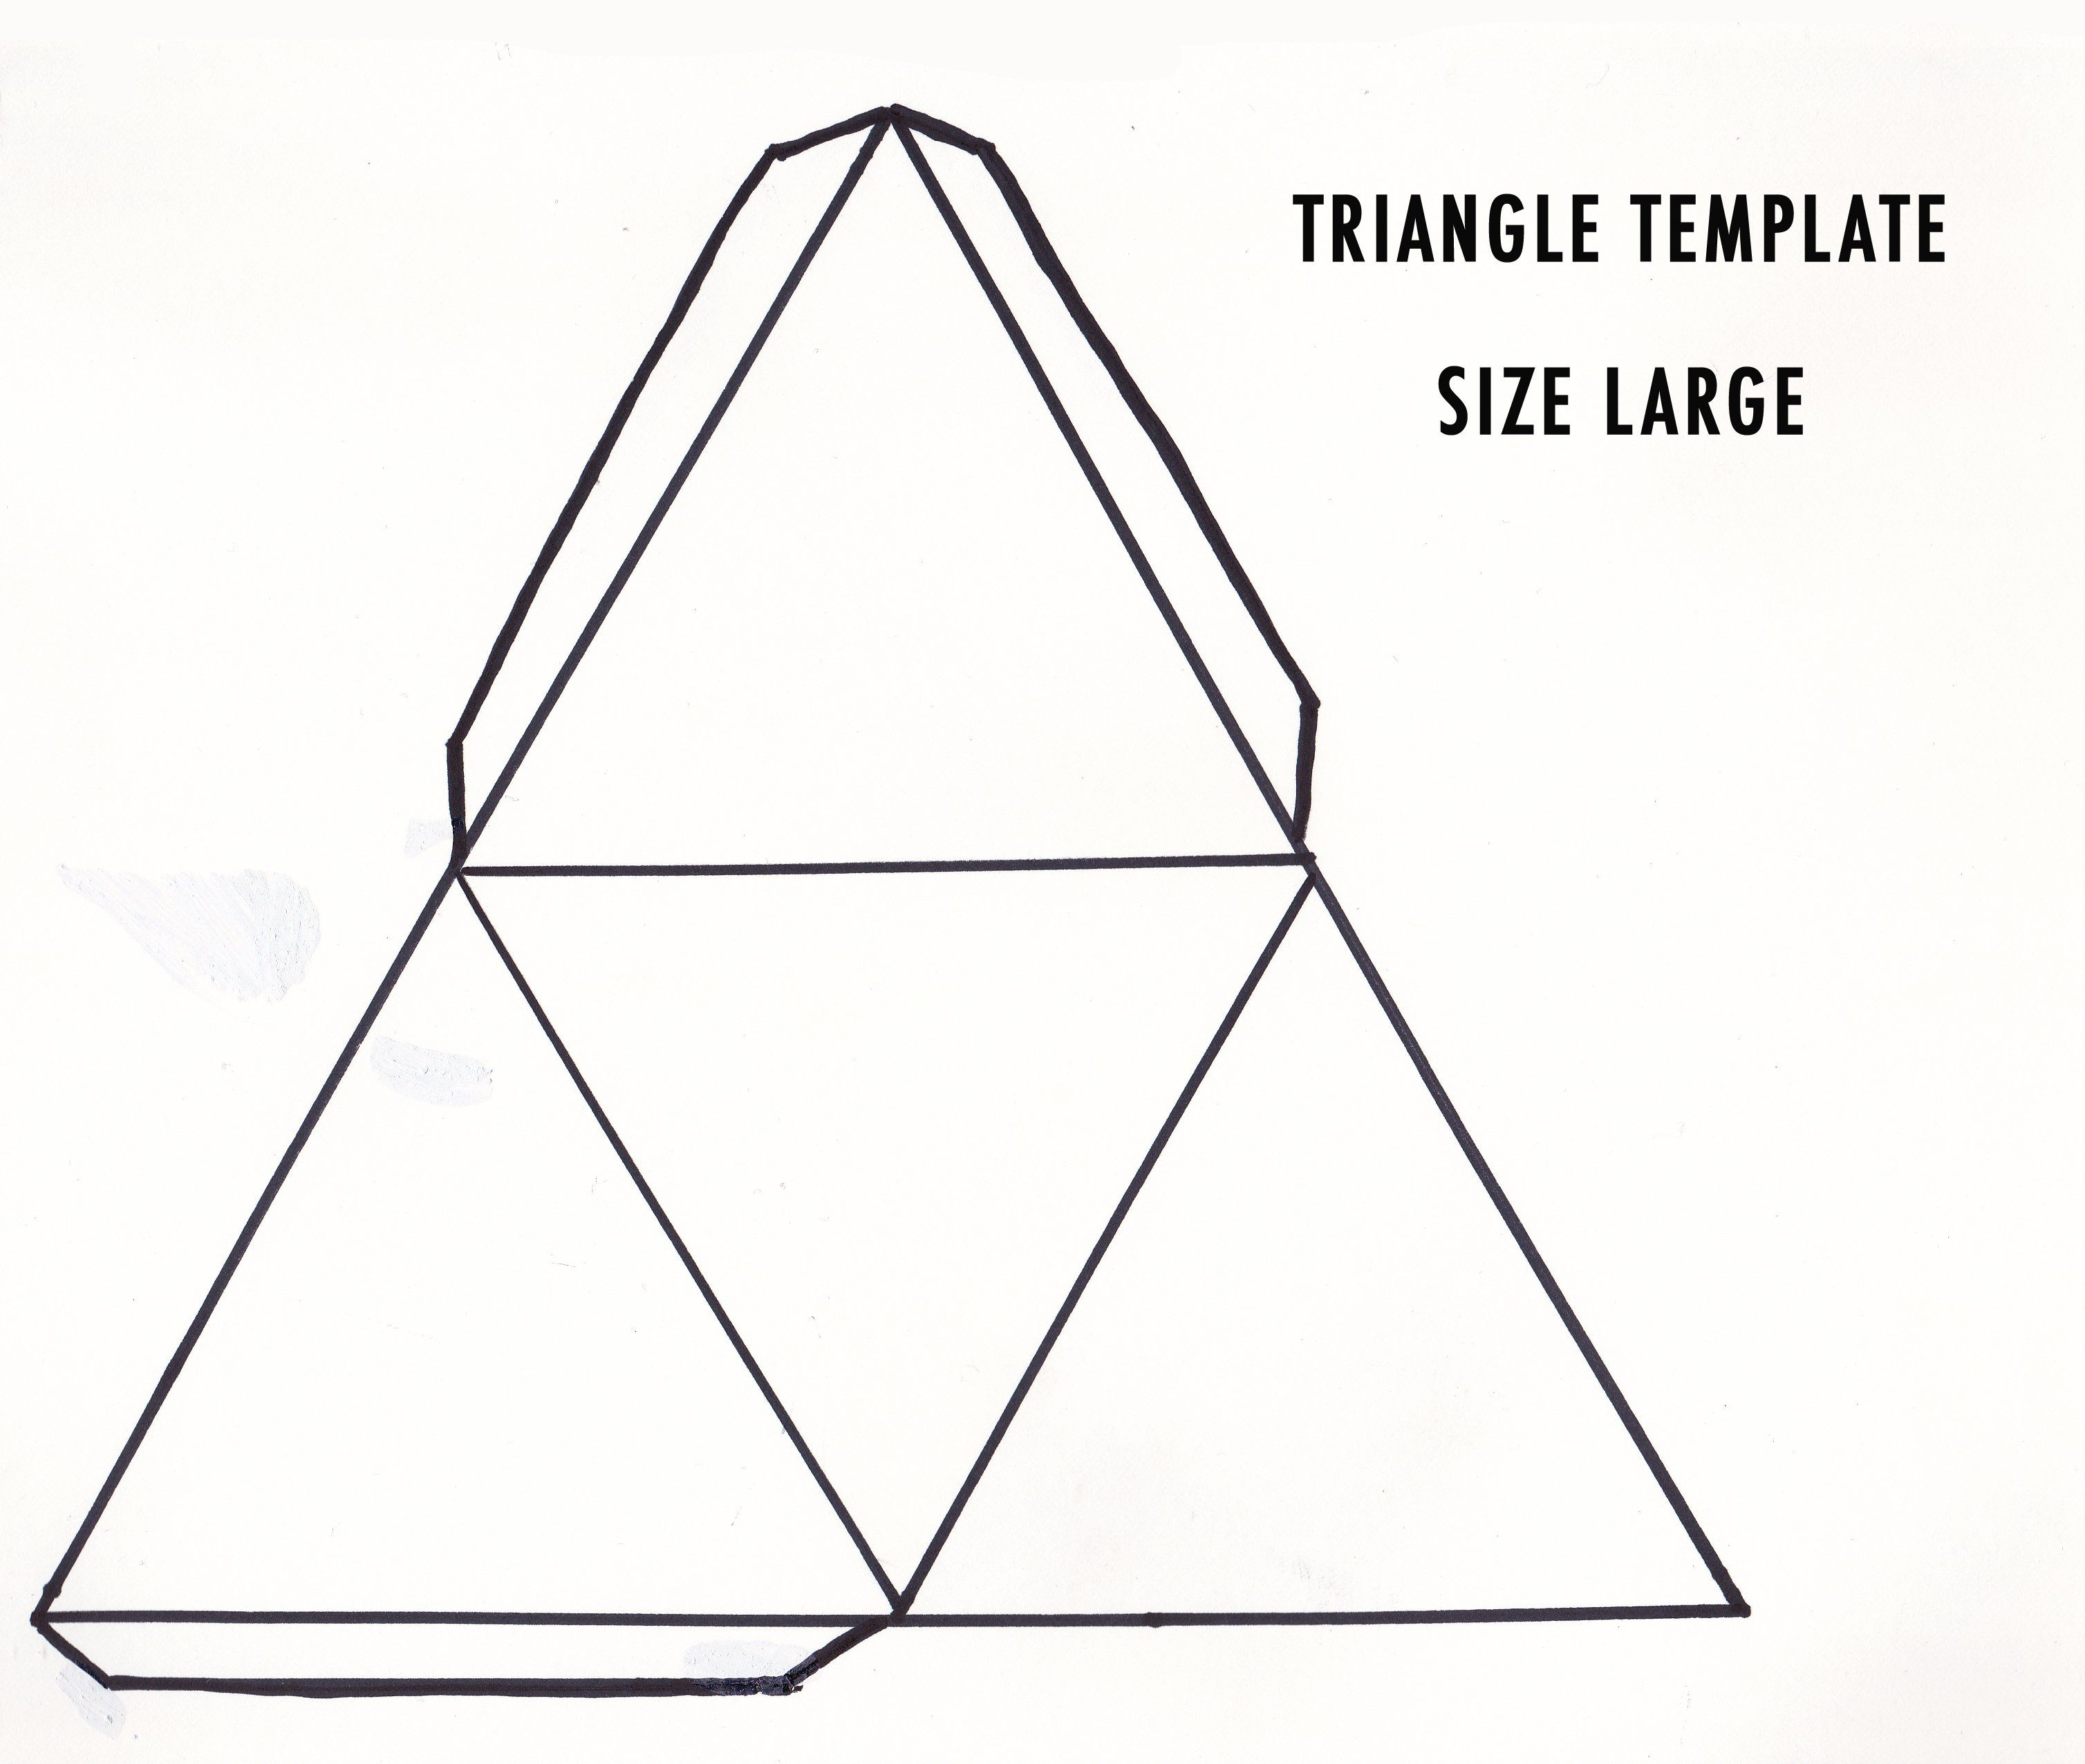 Triangle Template